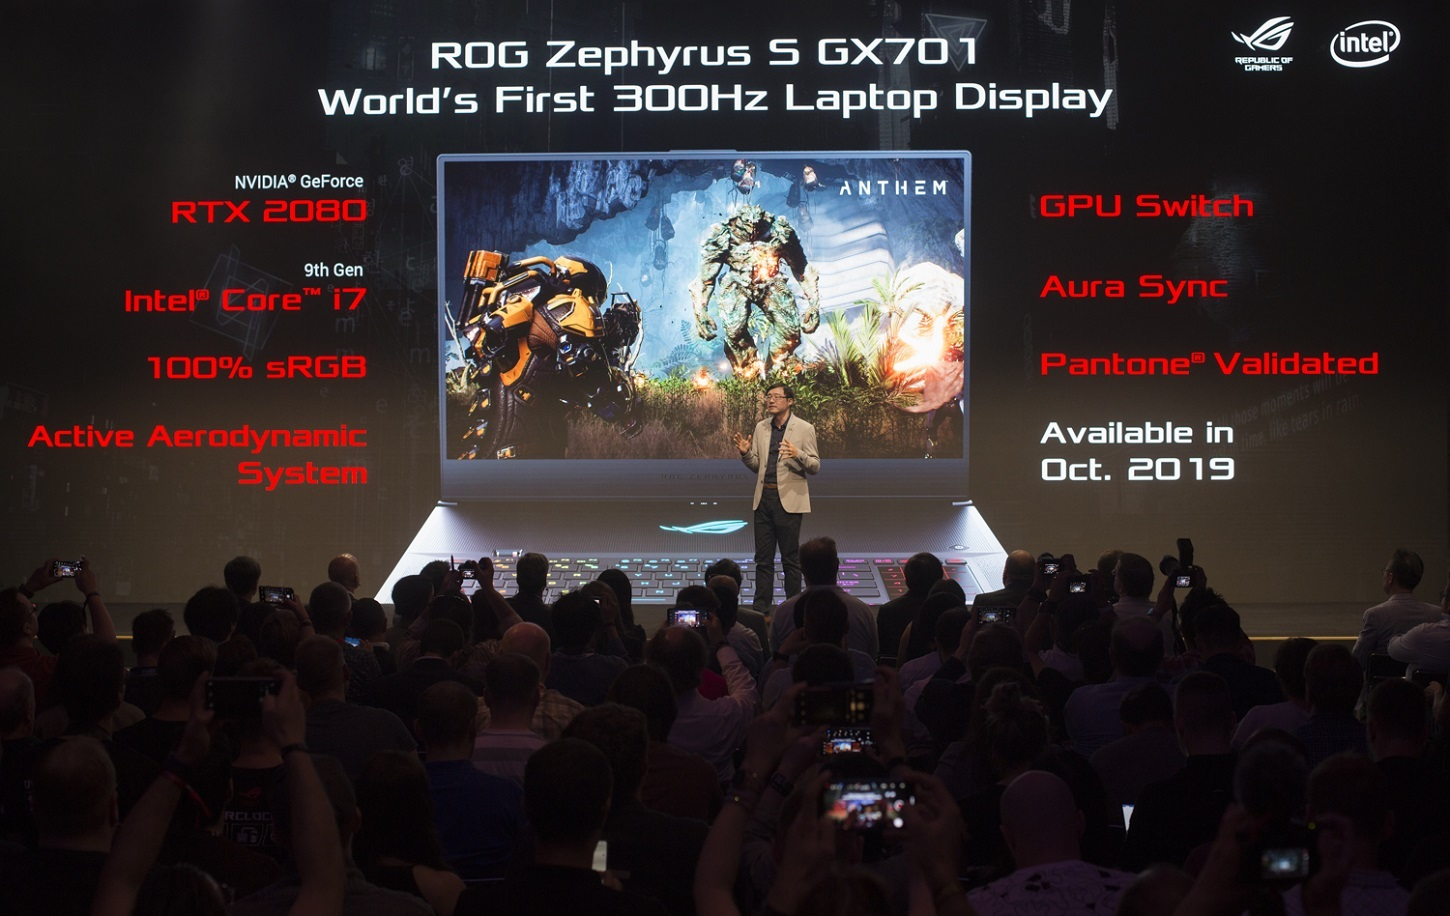 ASUS is The First to Demonstrate 300Hz Gaming Laptop